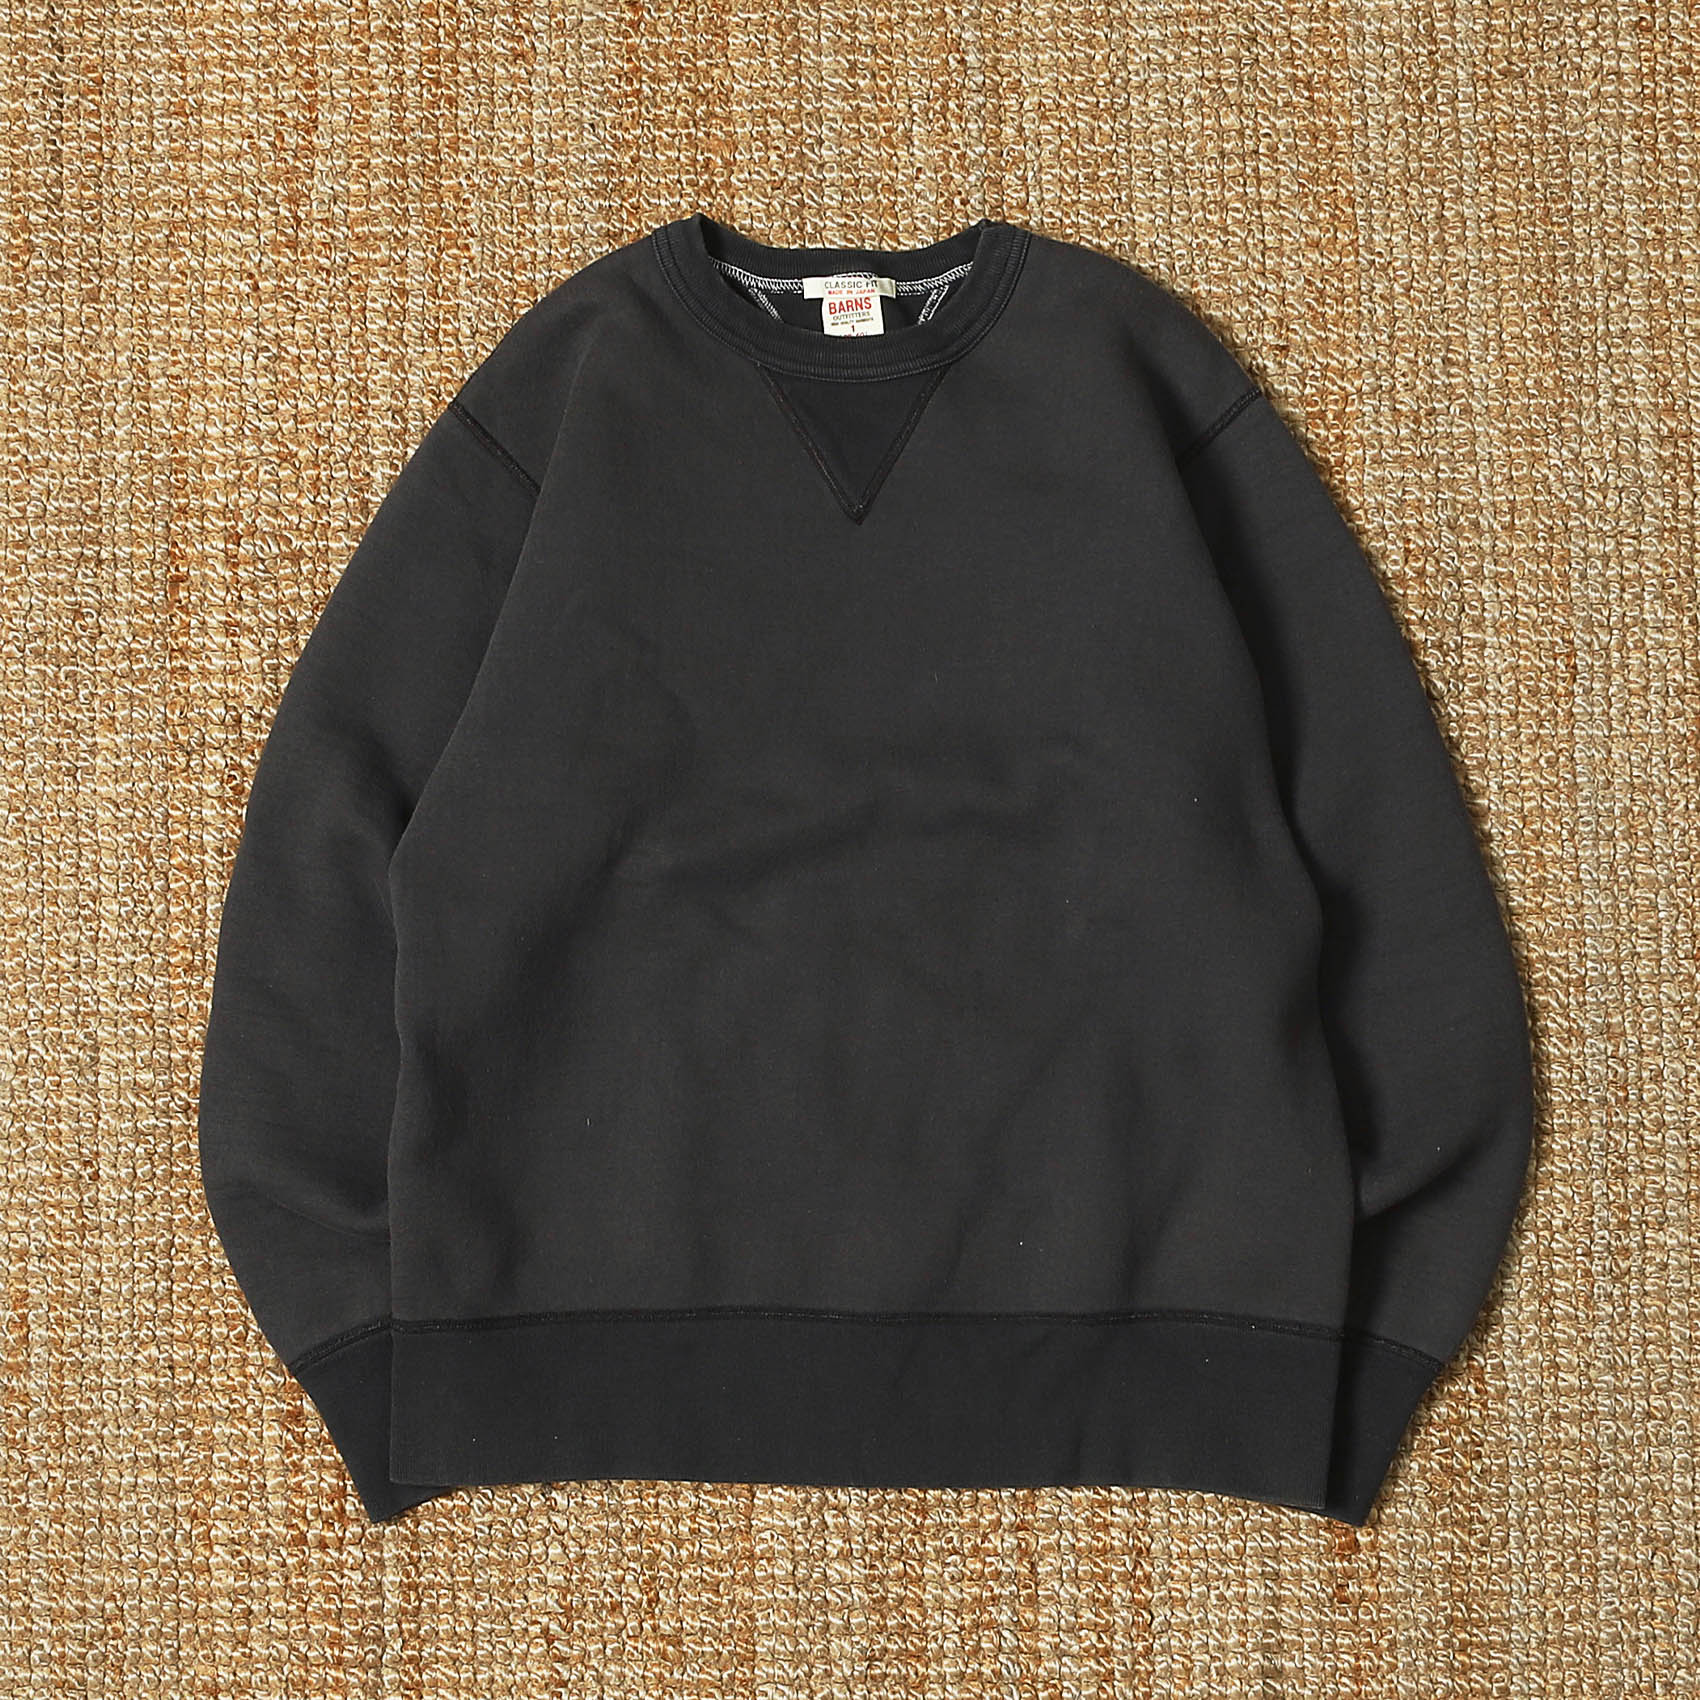 BARNS OUTFITTERS GUSSET CREW SWEATSHIRTS - BLACK (BR3000)